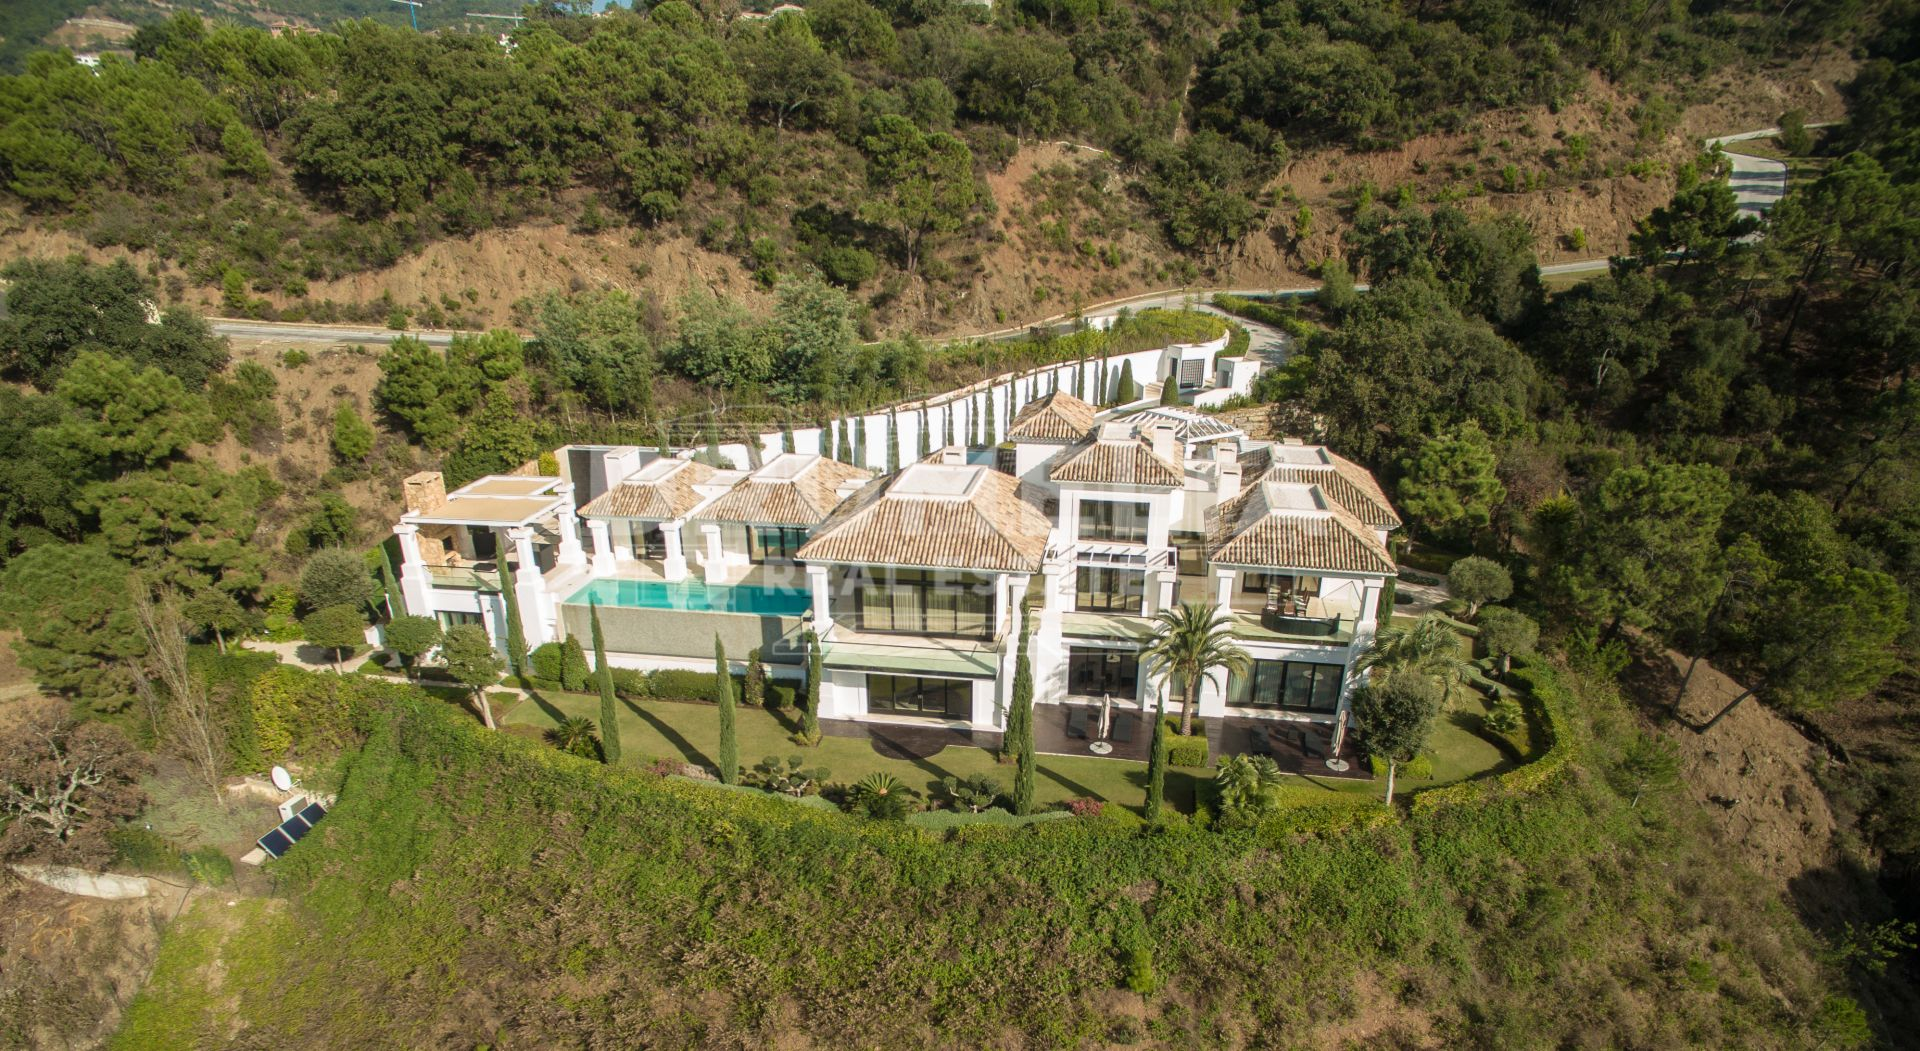 Benahavis, Outstanding Modern/Contemporary Villa in La Zagaleta Golf and Country Club, Benahavis